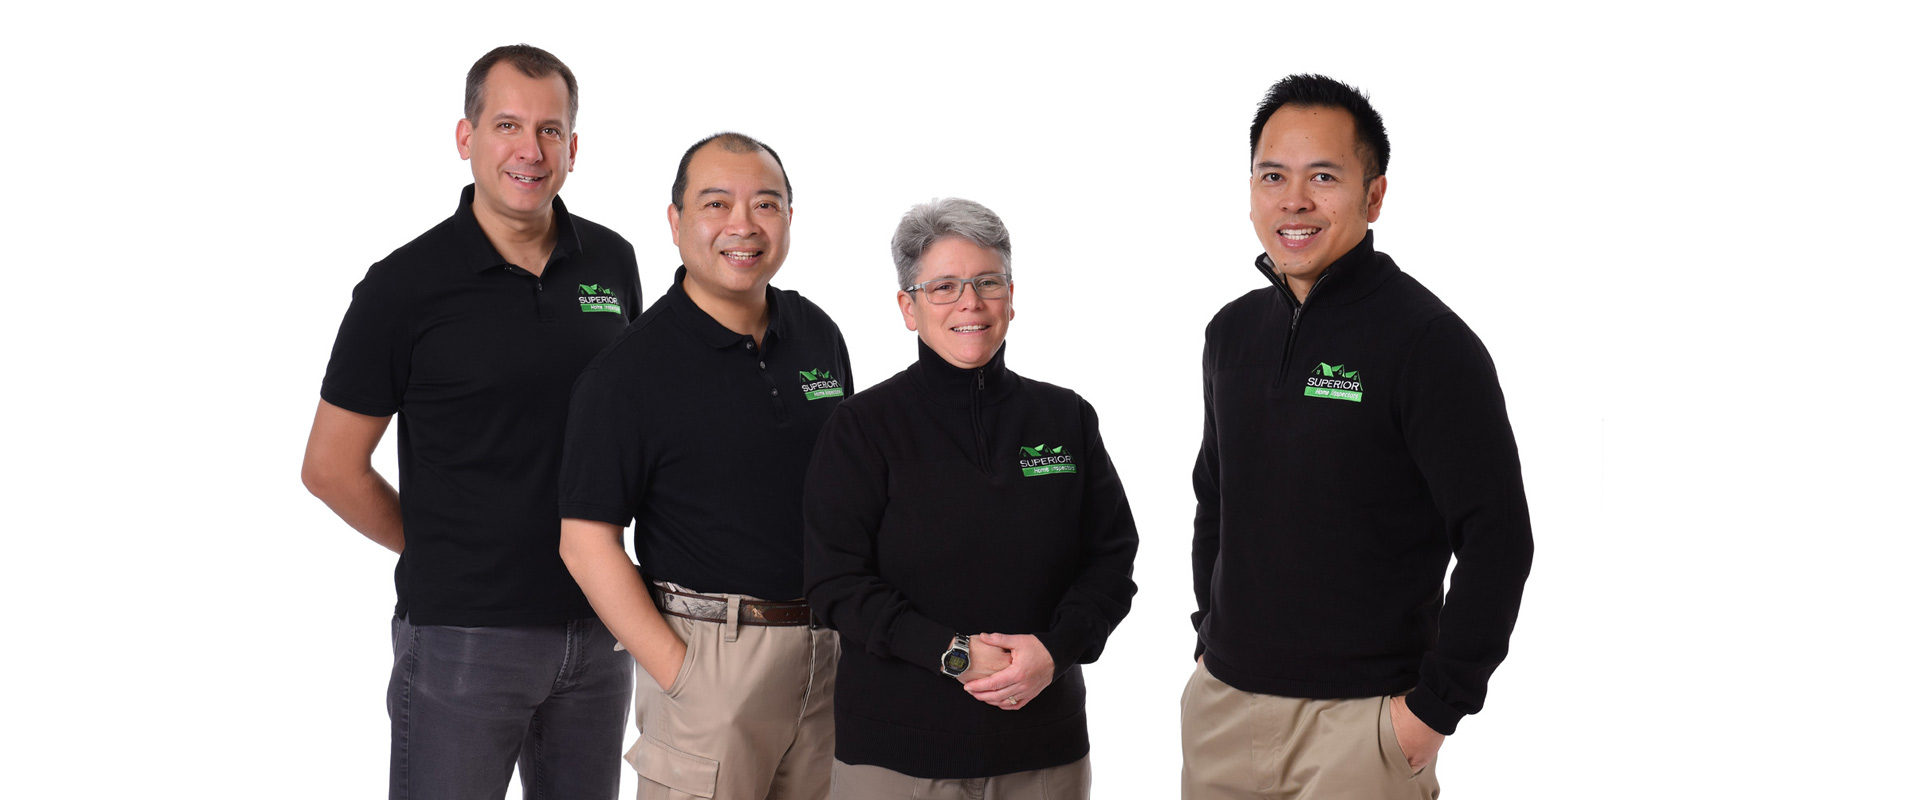 Small business team shot